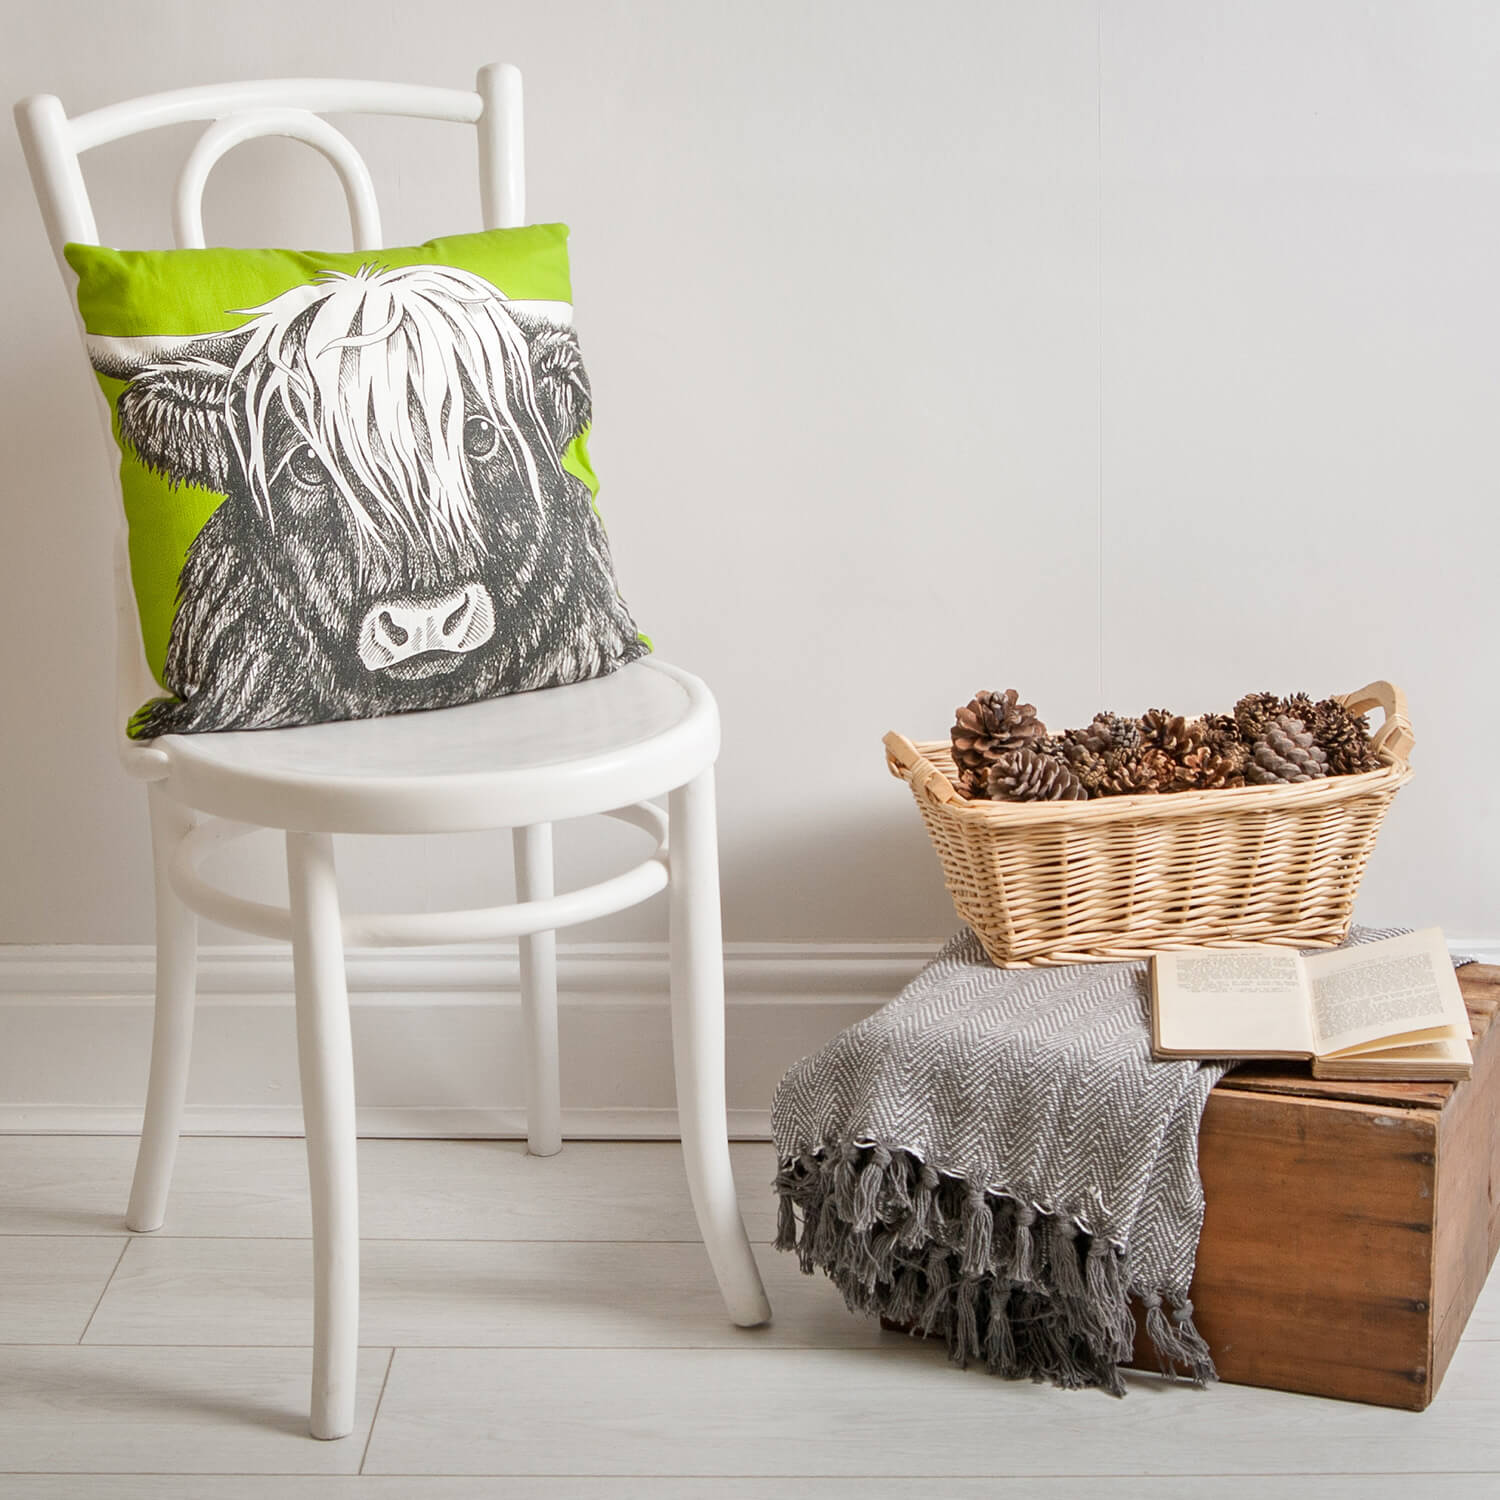 Green printed cushion of a highland cow photographed in a lifestyle setting